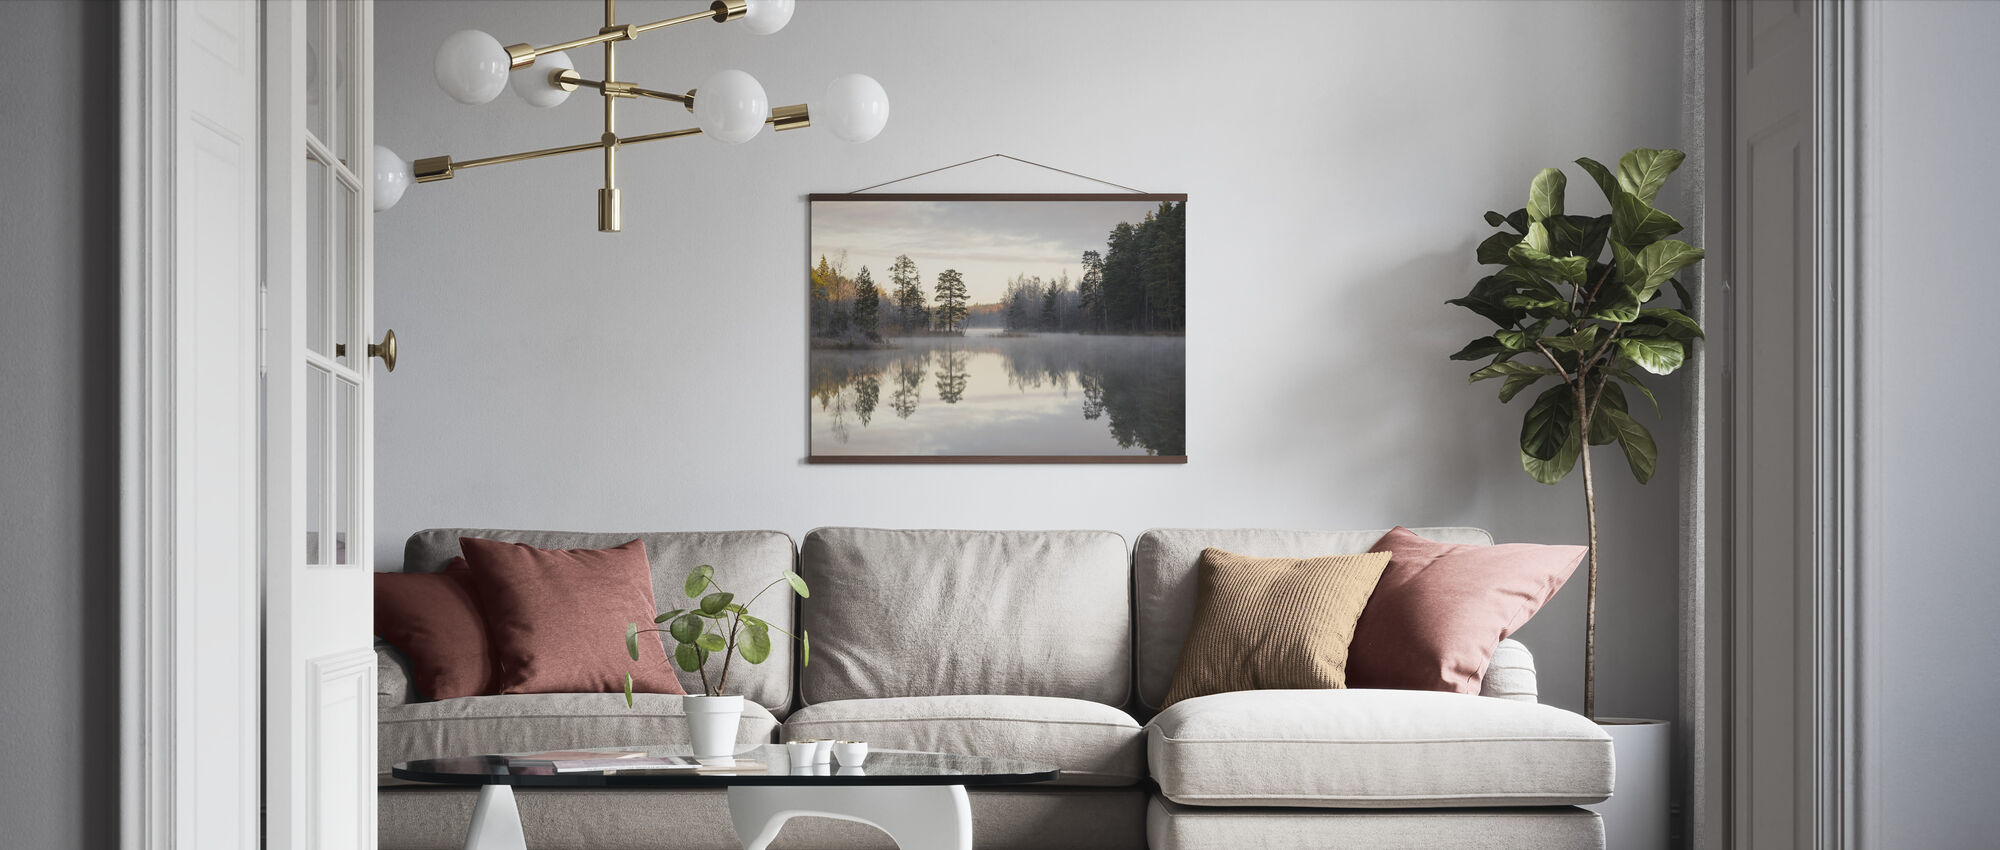 Foggy Morning - Poster - Living Room